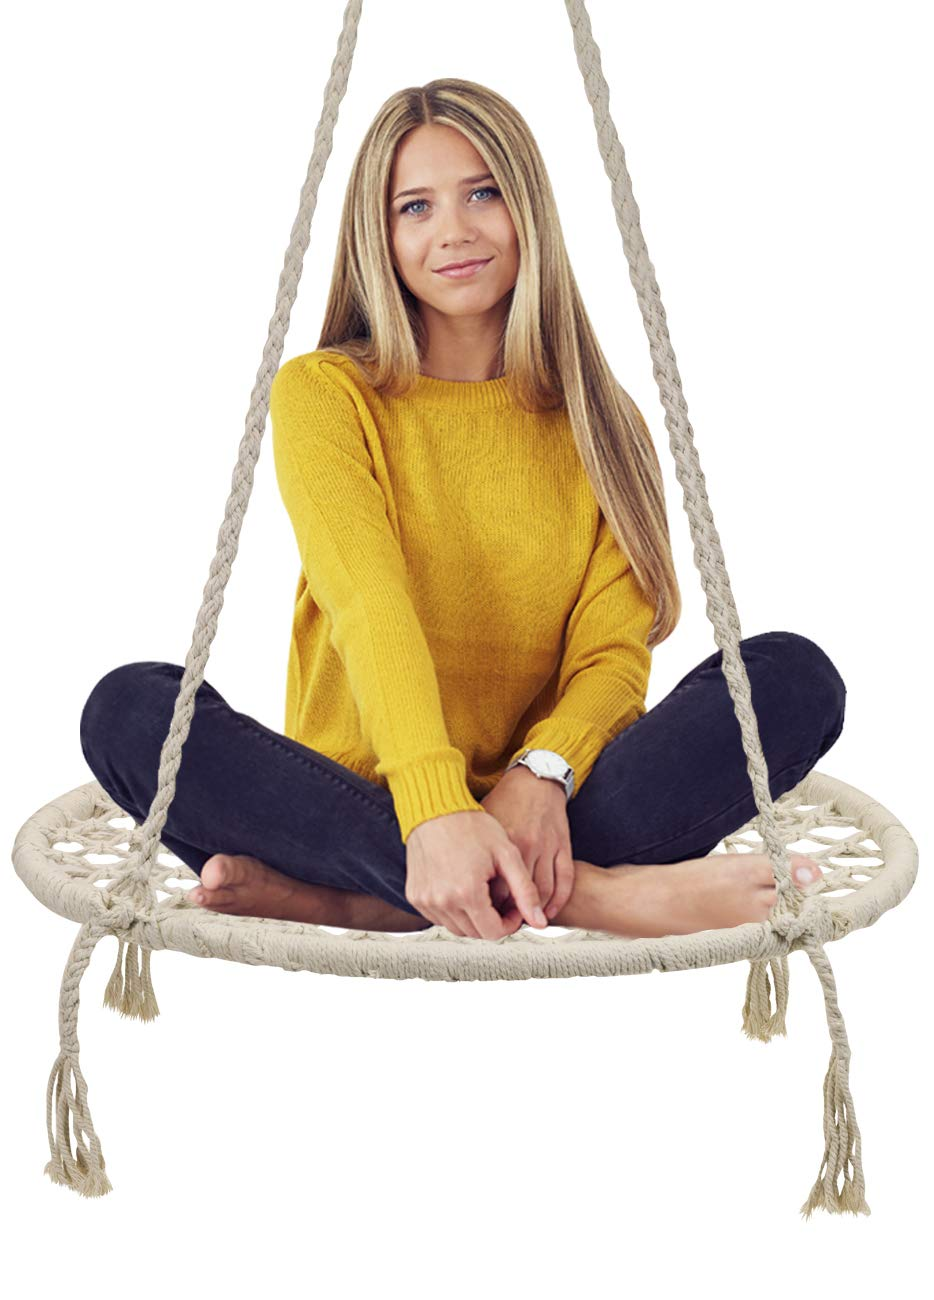 Sorbus Hammock Chair Macrame Swing, 265 Pound Capacity, Perfect for Indoor Outdoor Home, Patio, Deck, Yard, Garden Macrame Round Swing – Cream